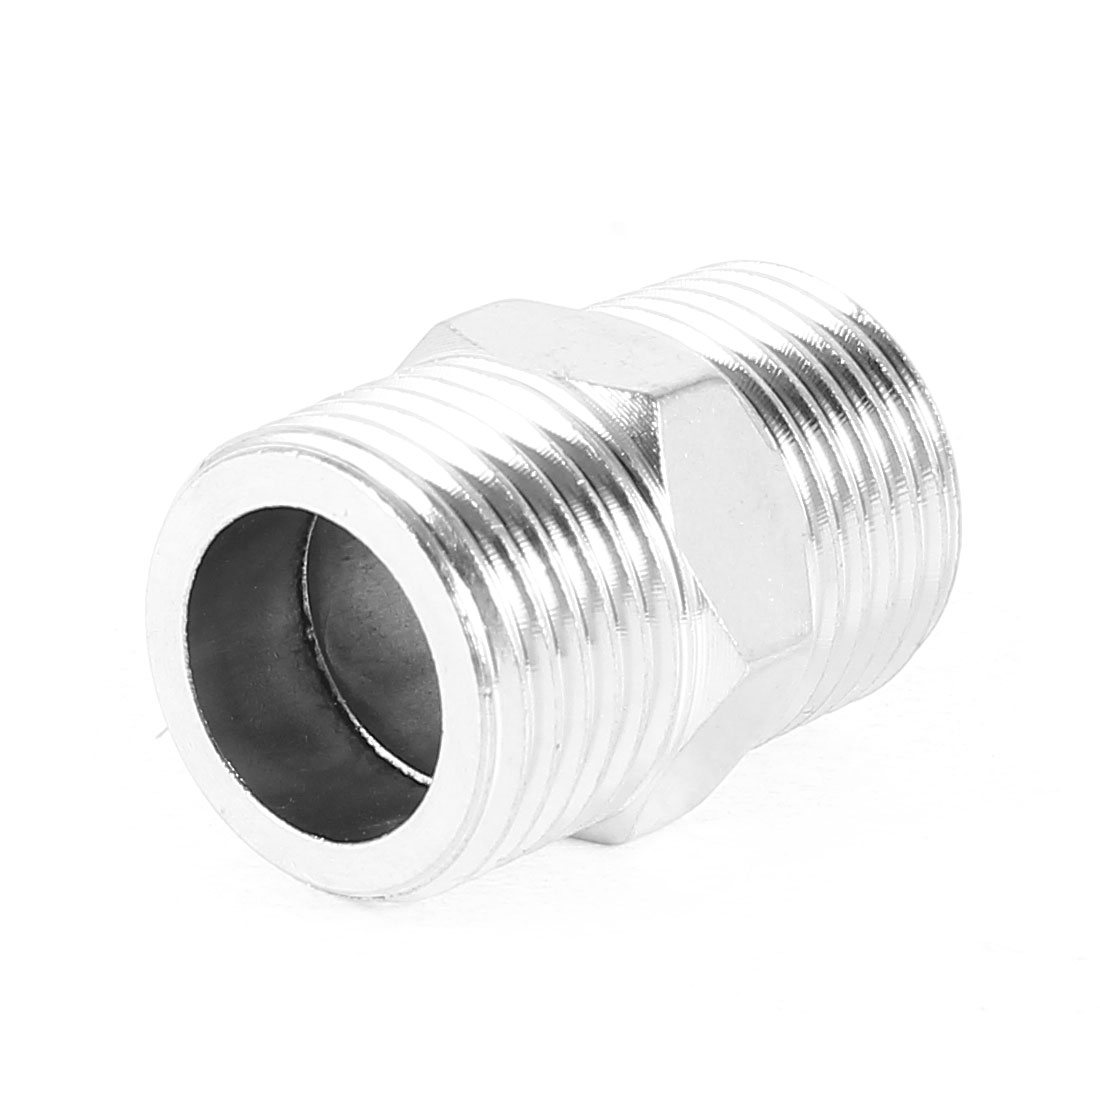 Metal 1/2PT Male Thread Straight Pipe Connector Coupler Adapter Silver Tone